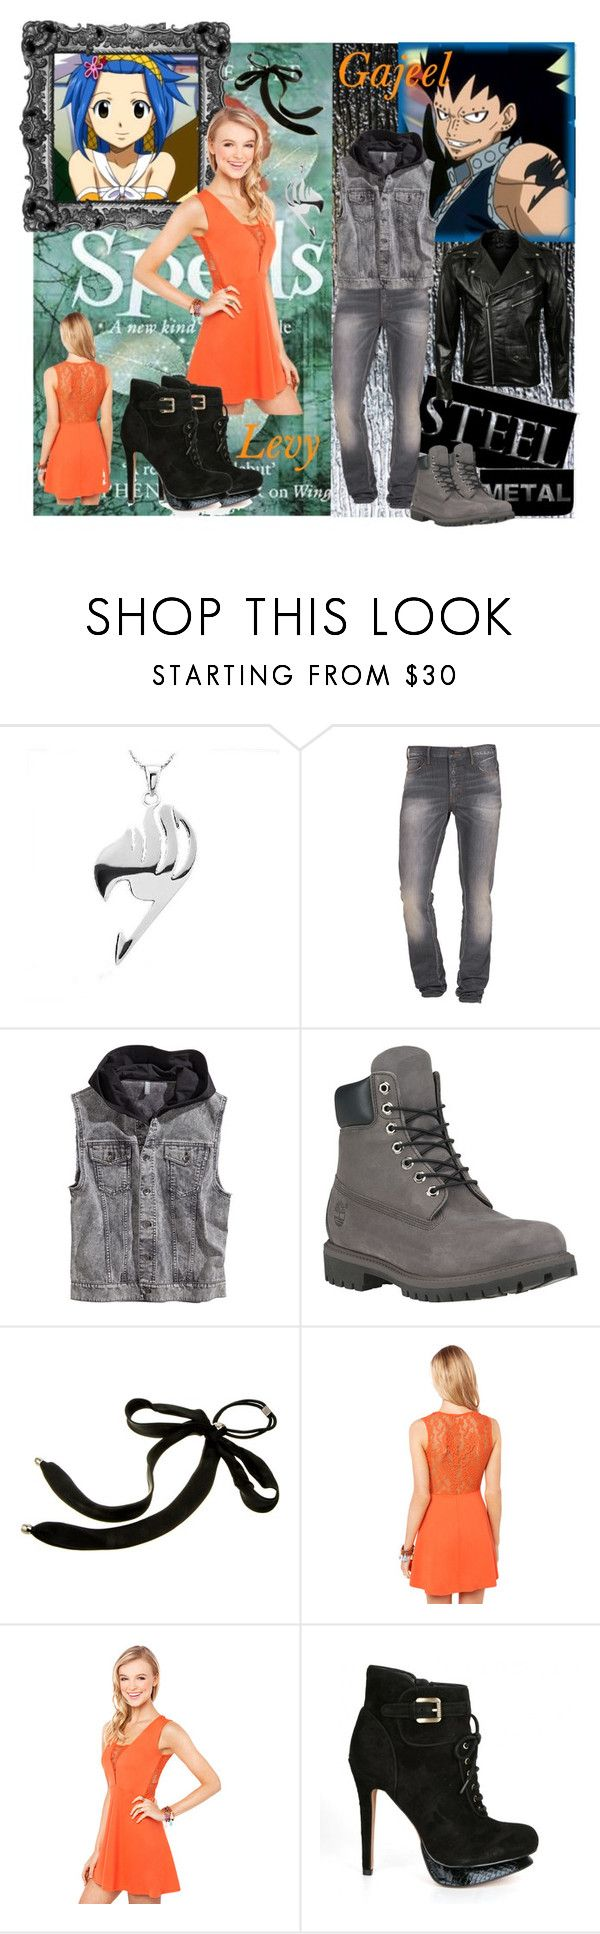 """A New Kind Of Fairy Tail<3"" by bluerose423 ❤ liked on Polyvore featuring Laurèl, PRPS Goods & Co., H&M, Timberland, Colette Malouf, Akira, Sam Edelman, VIPARO, love and anime"